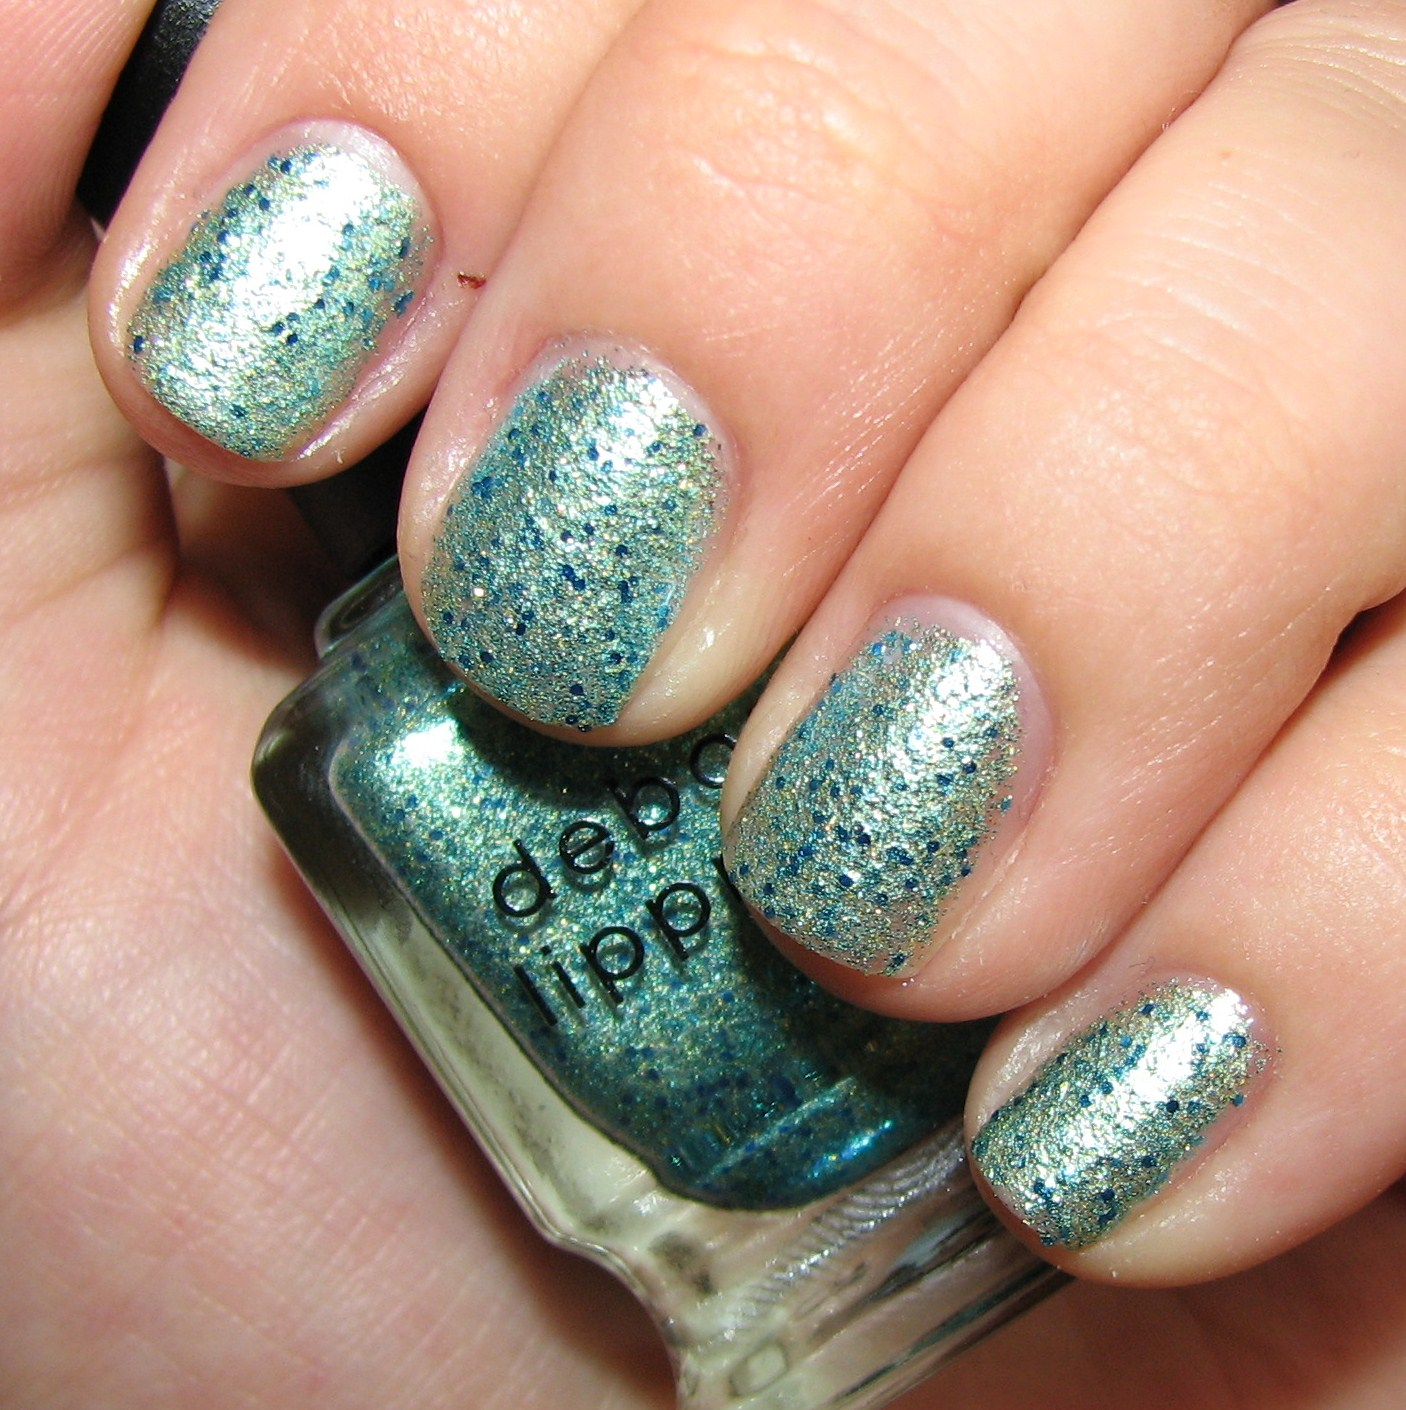 Dream nail polish